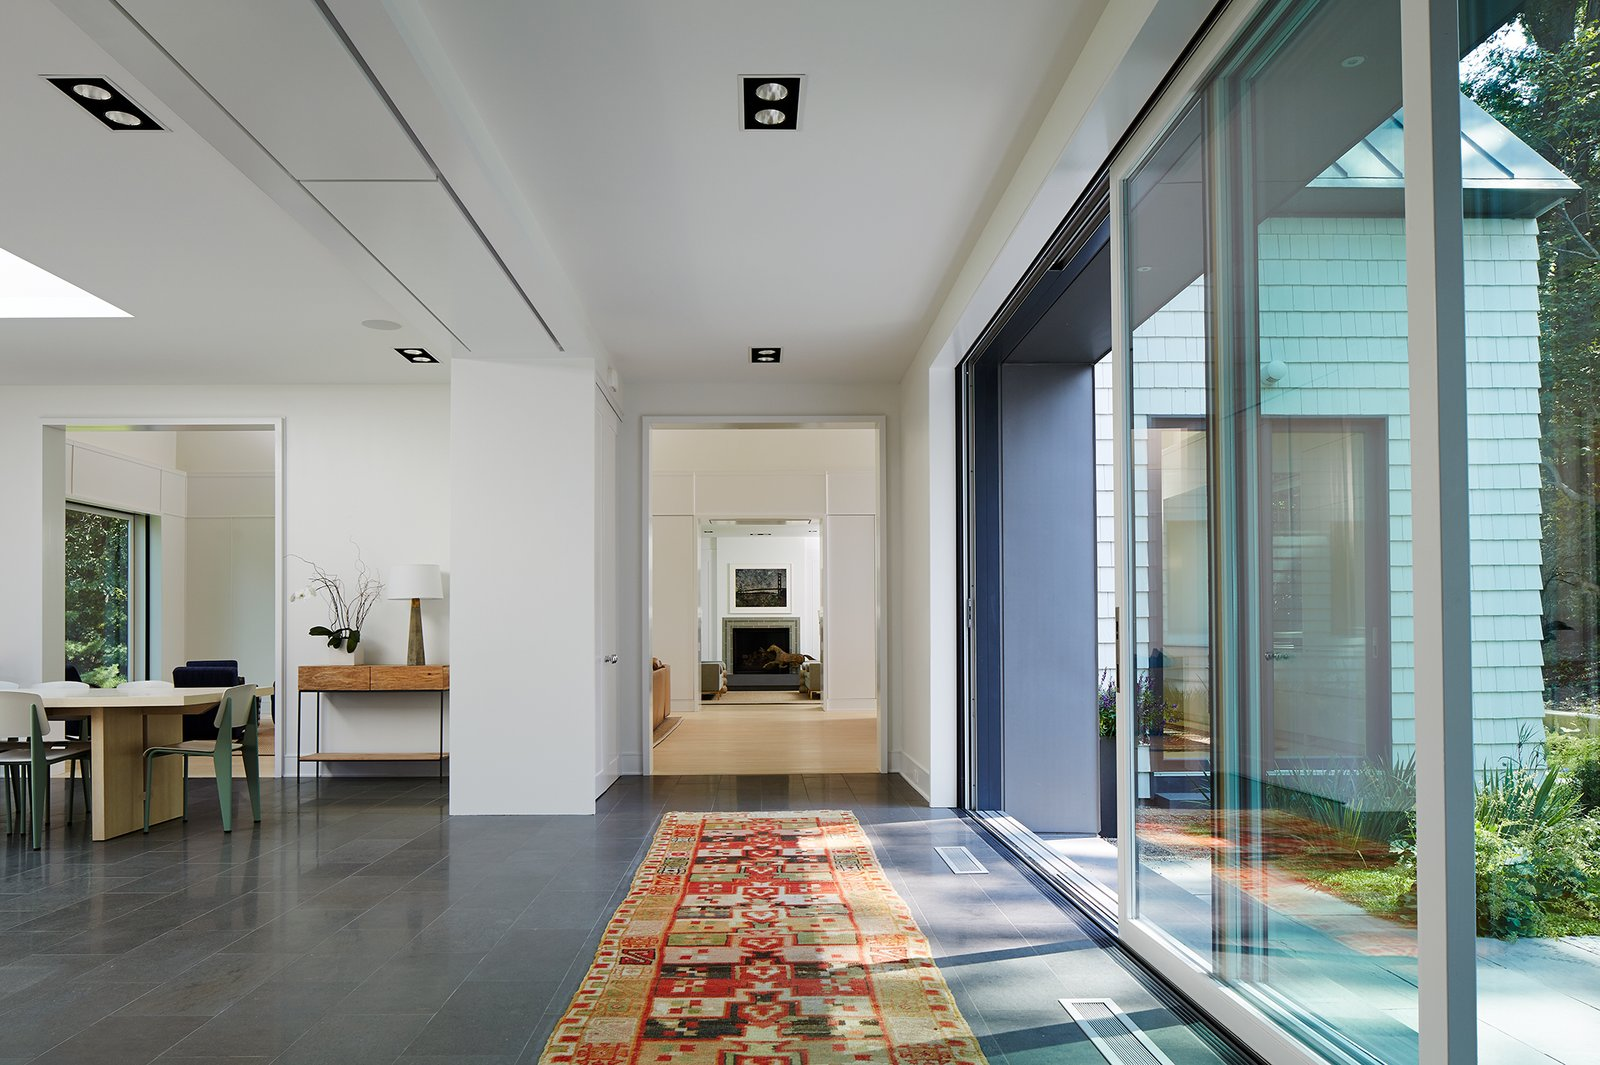 Central Entry Axis  New Buffalo Residence by Booth Hansen